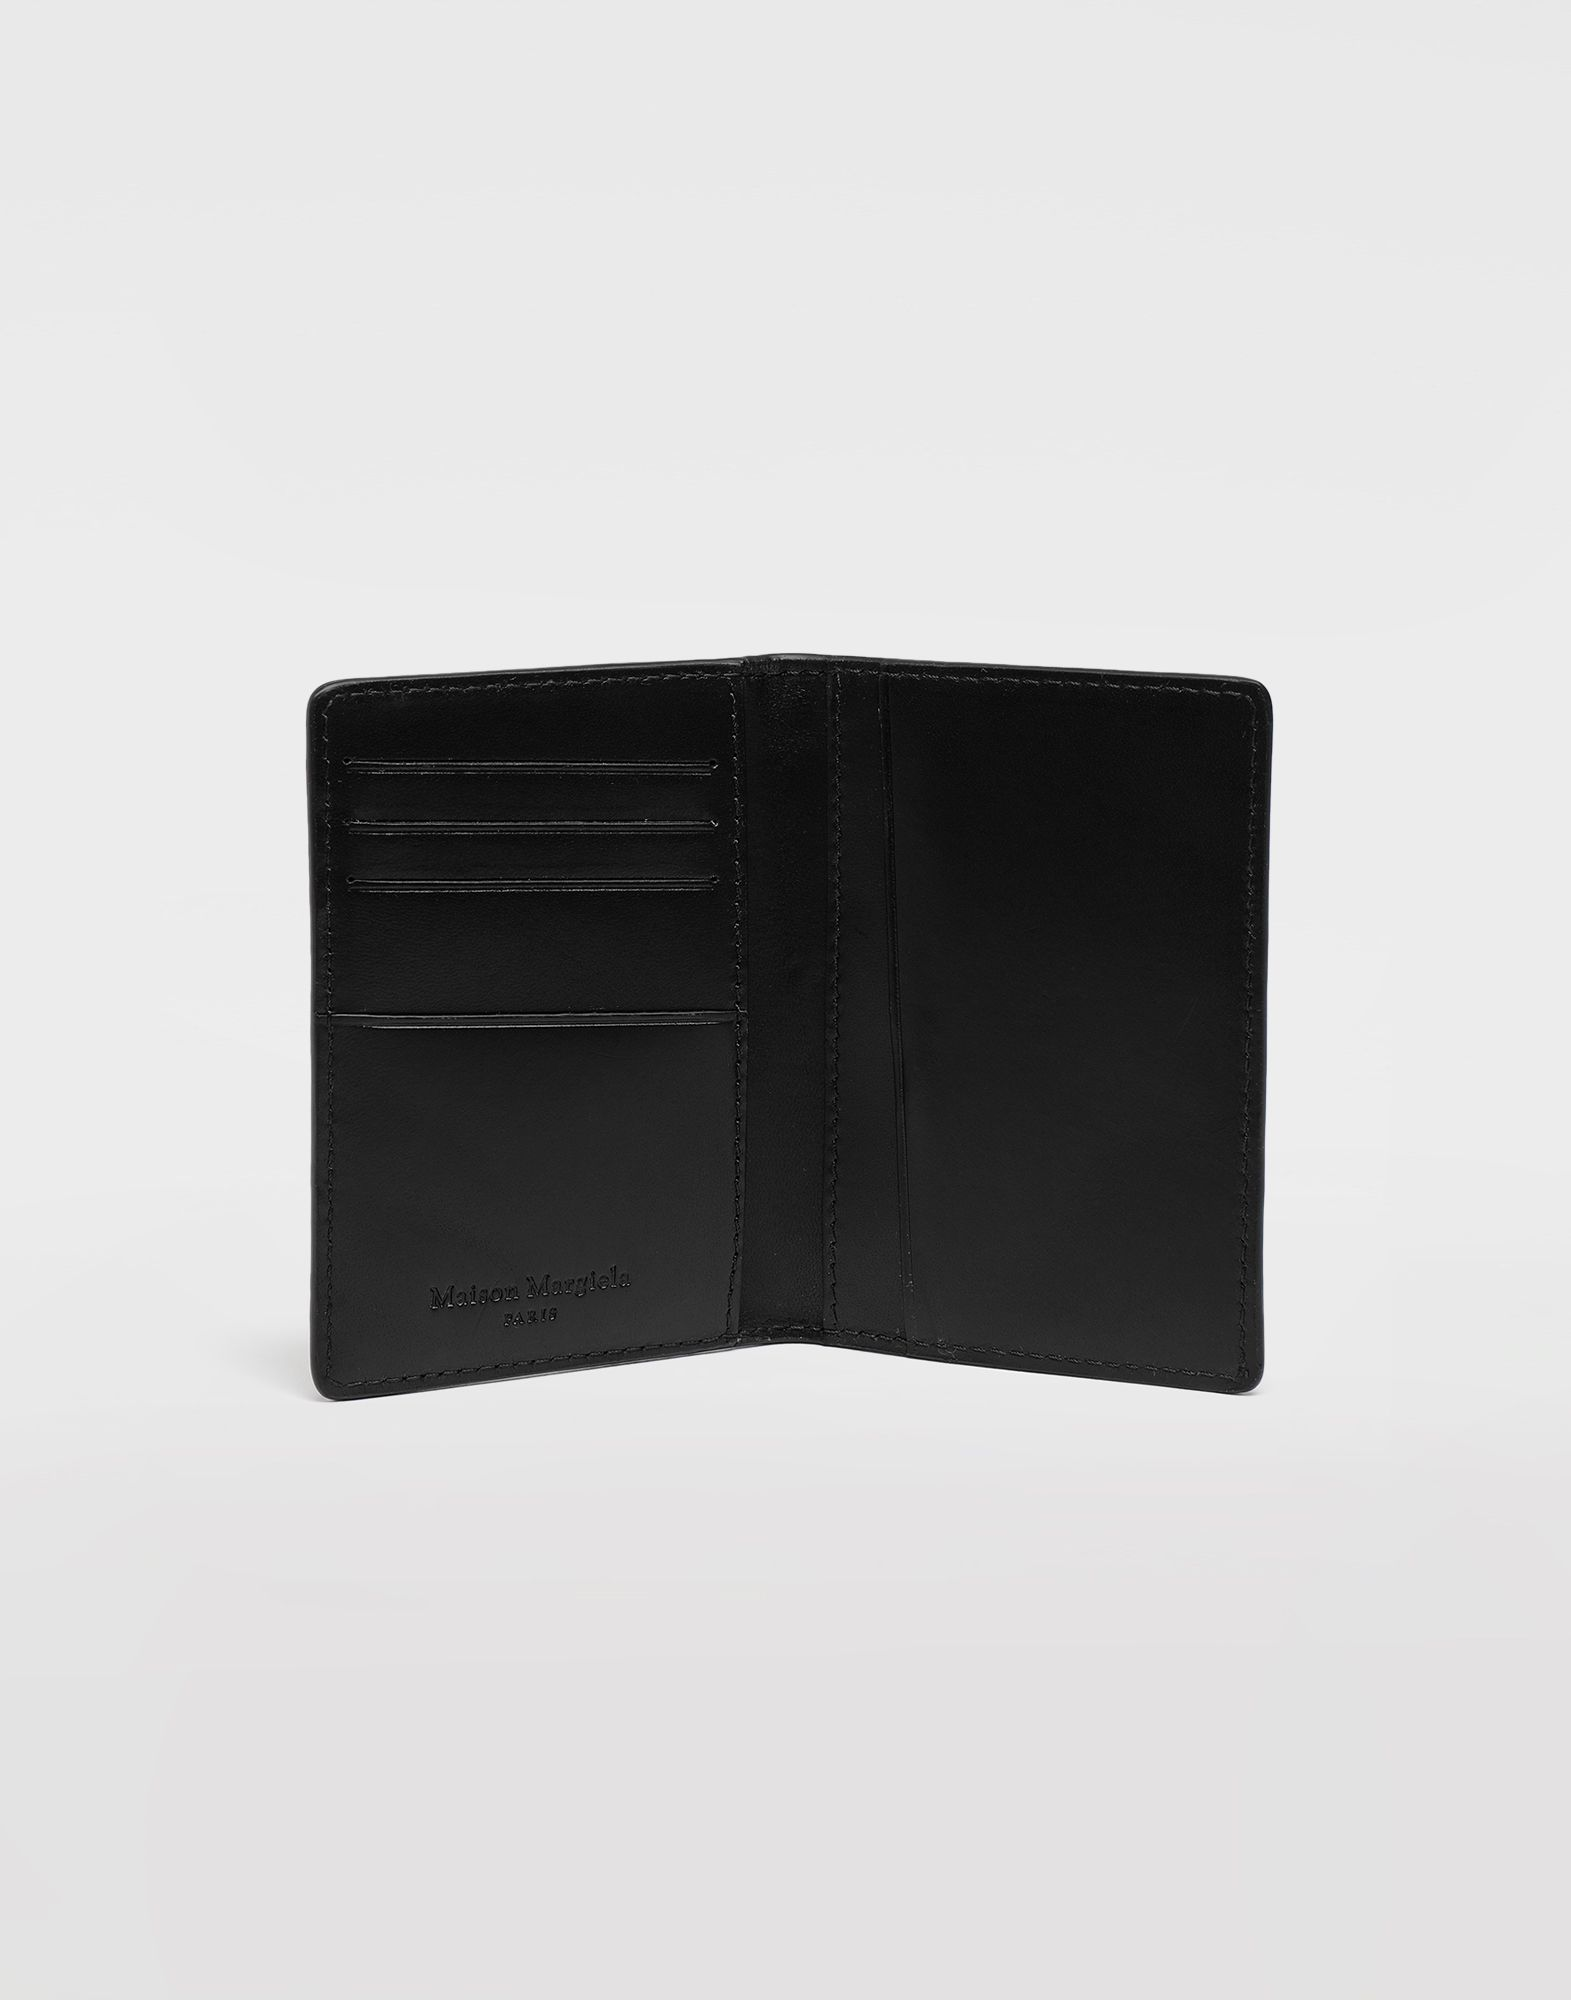 MAISON MARGIELA Leather fold-over wallet Wallets Man d